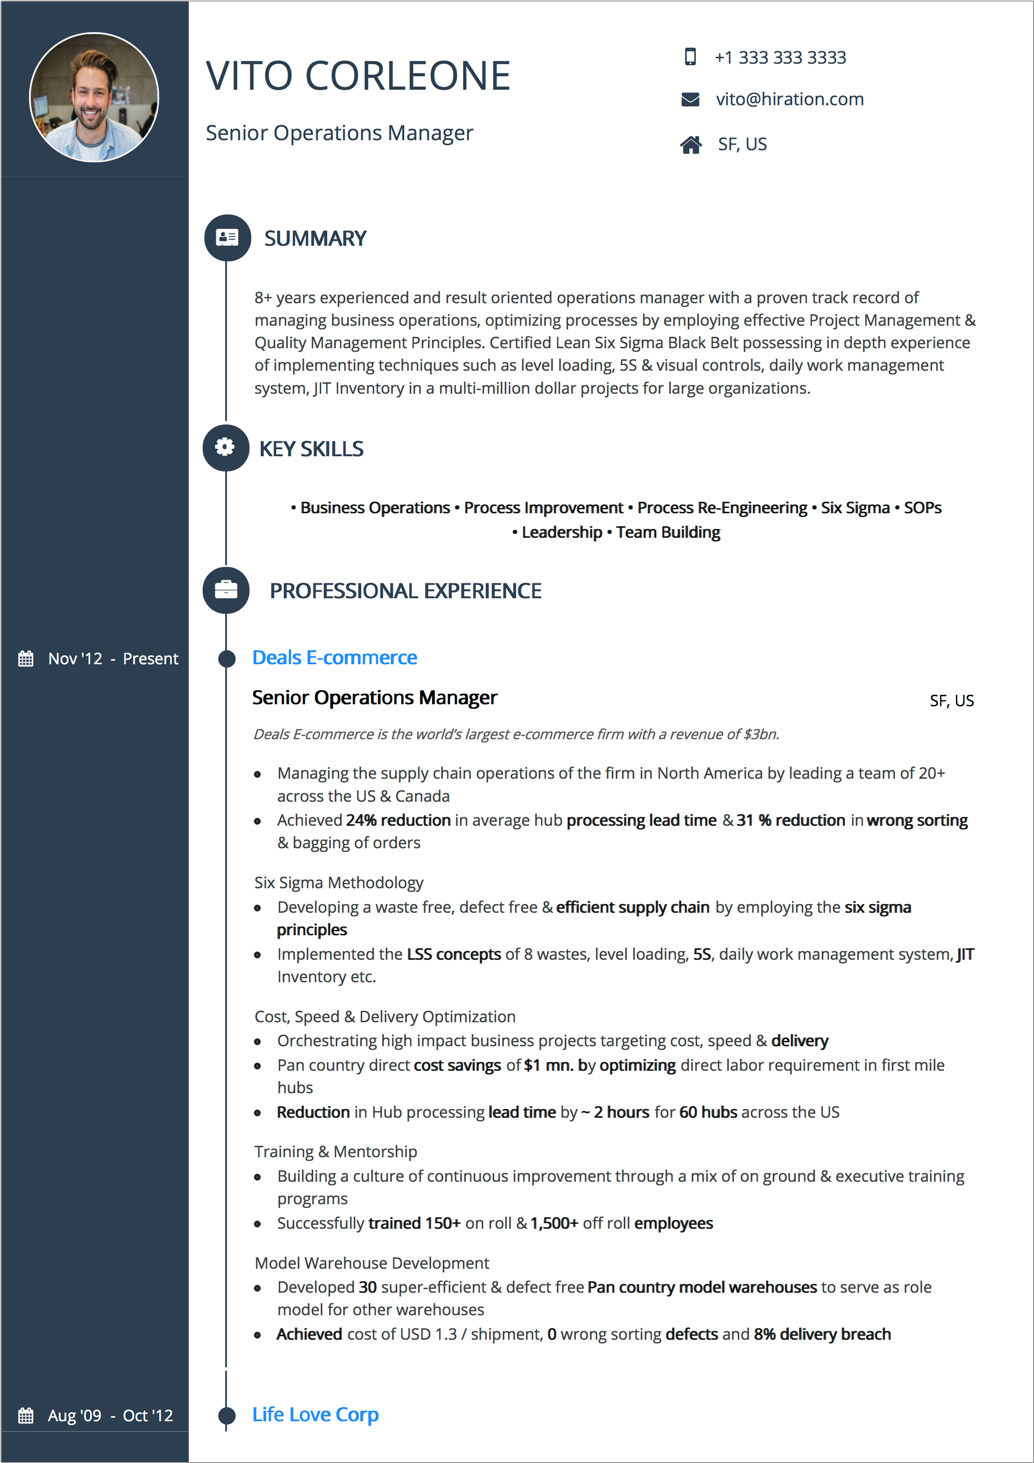 resume summary guide  2020 guide to writing a powerful summary